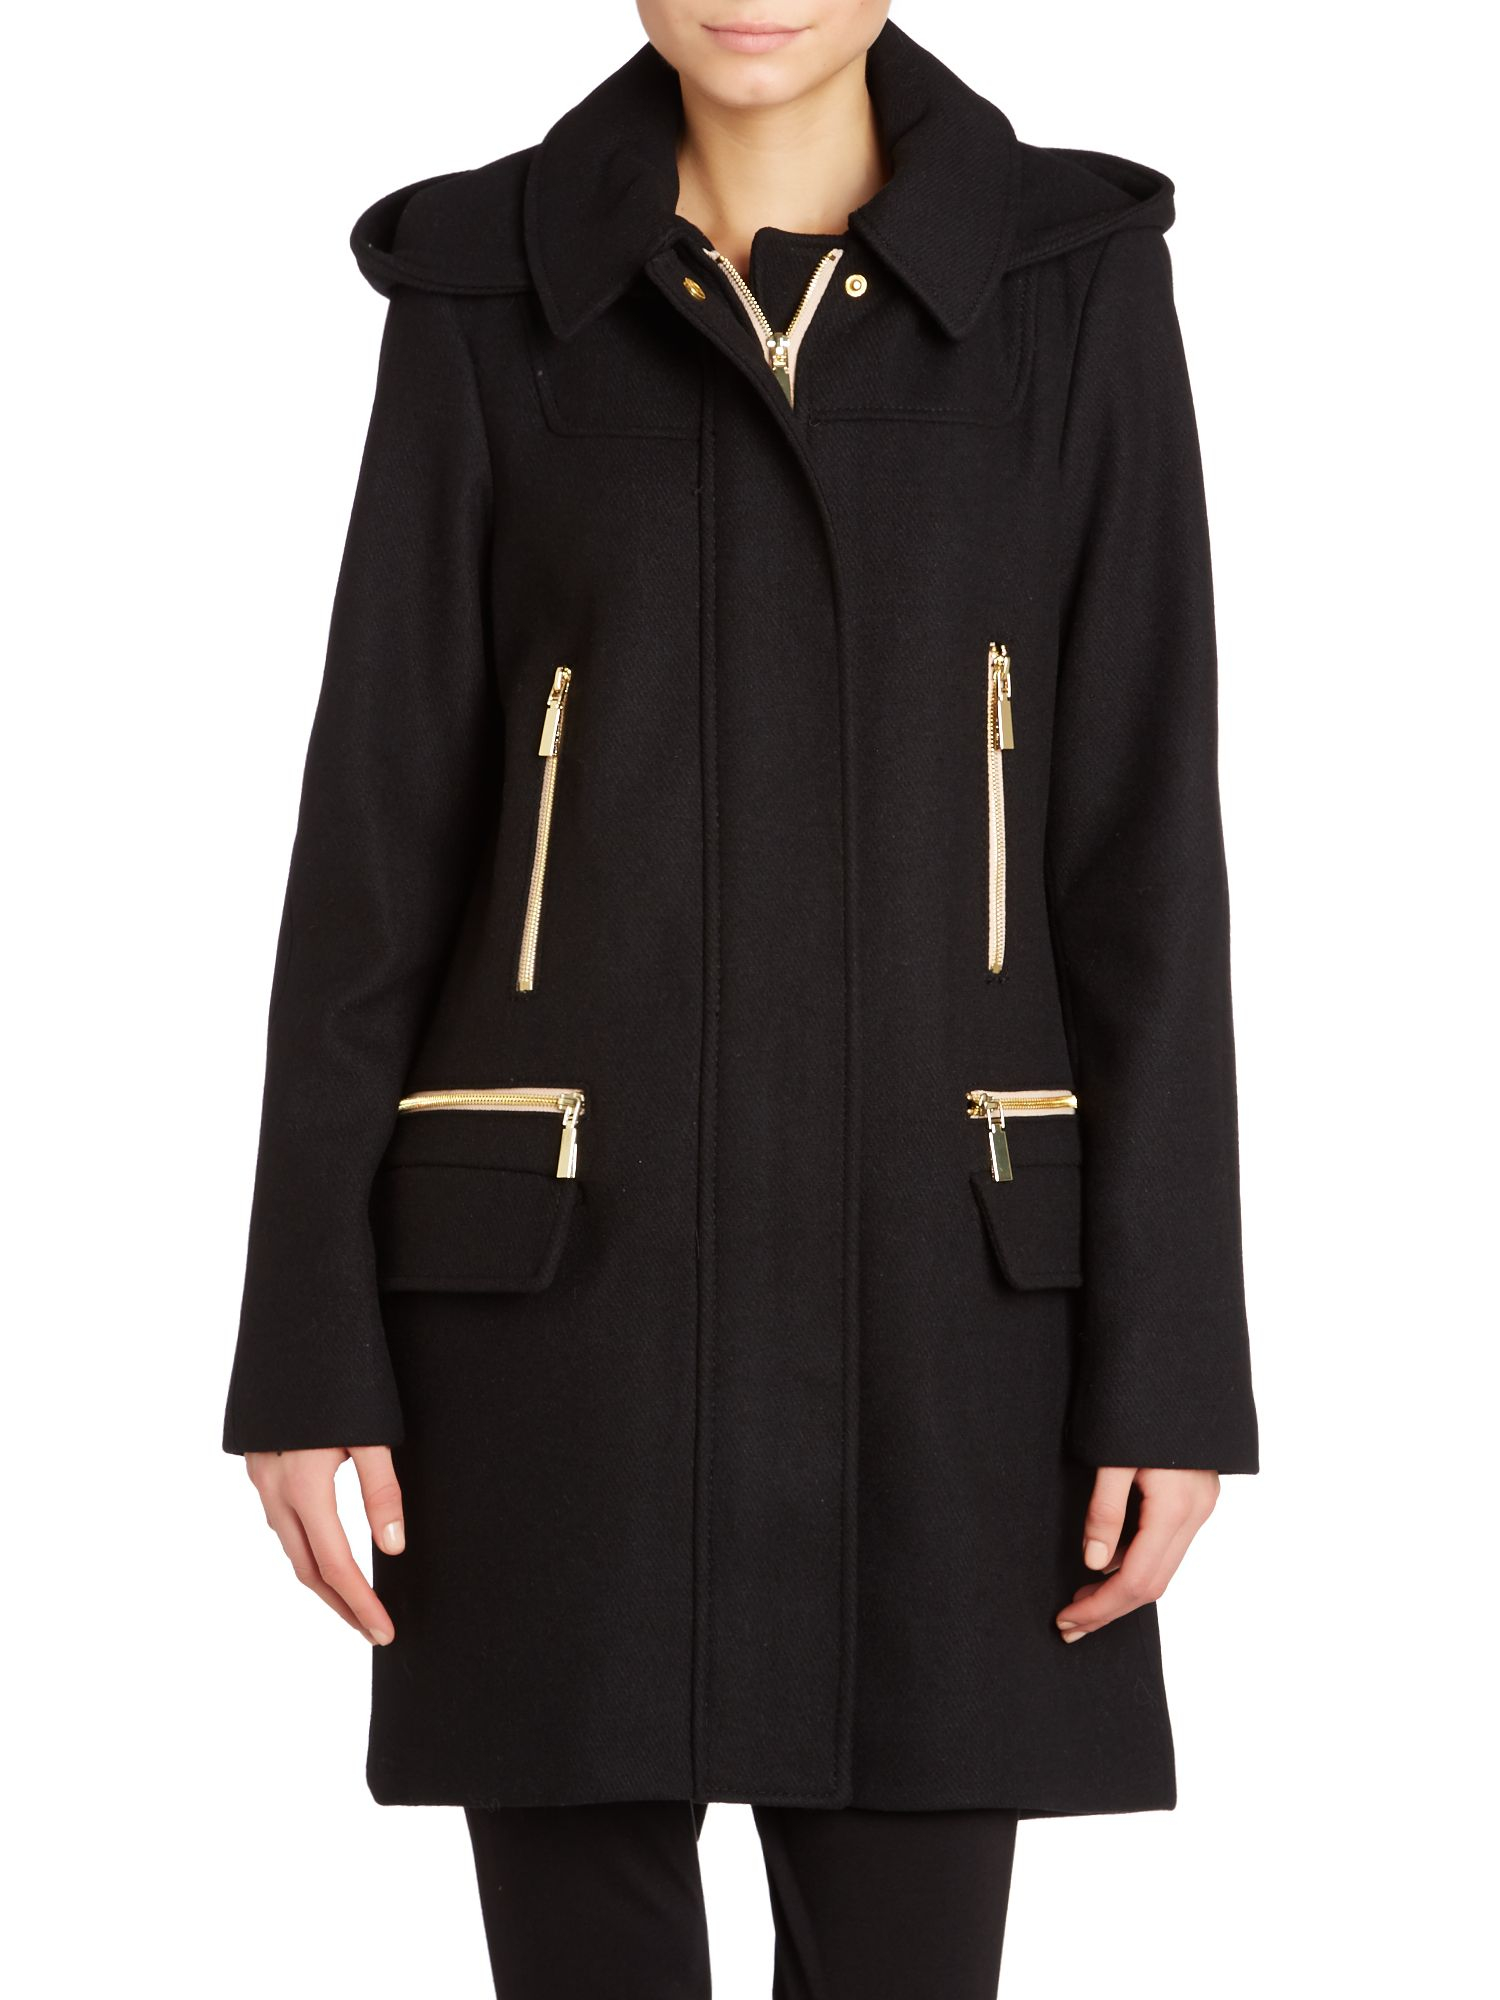 Vince camuto Wool Coat With Zip Pocket in Black | Lyst